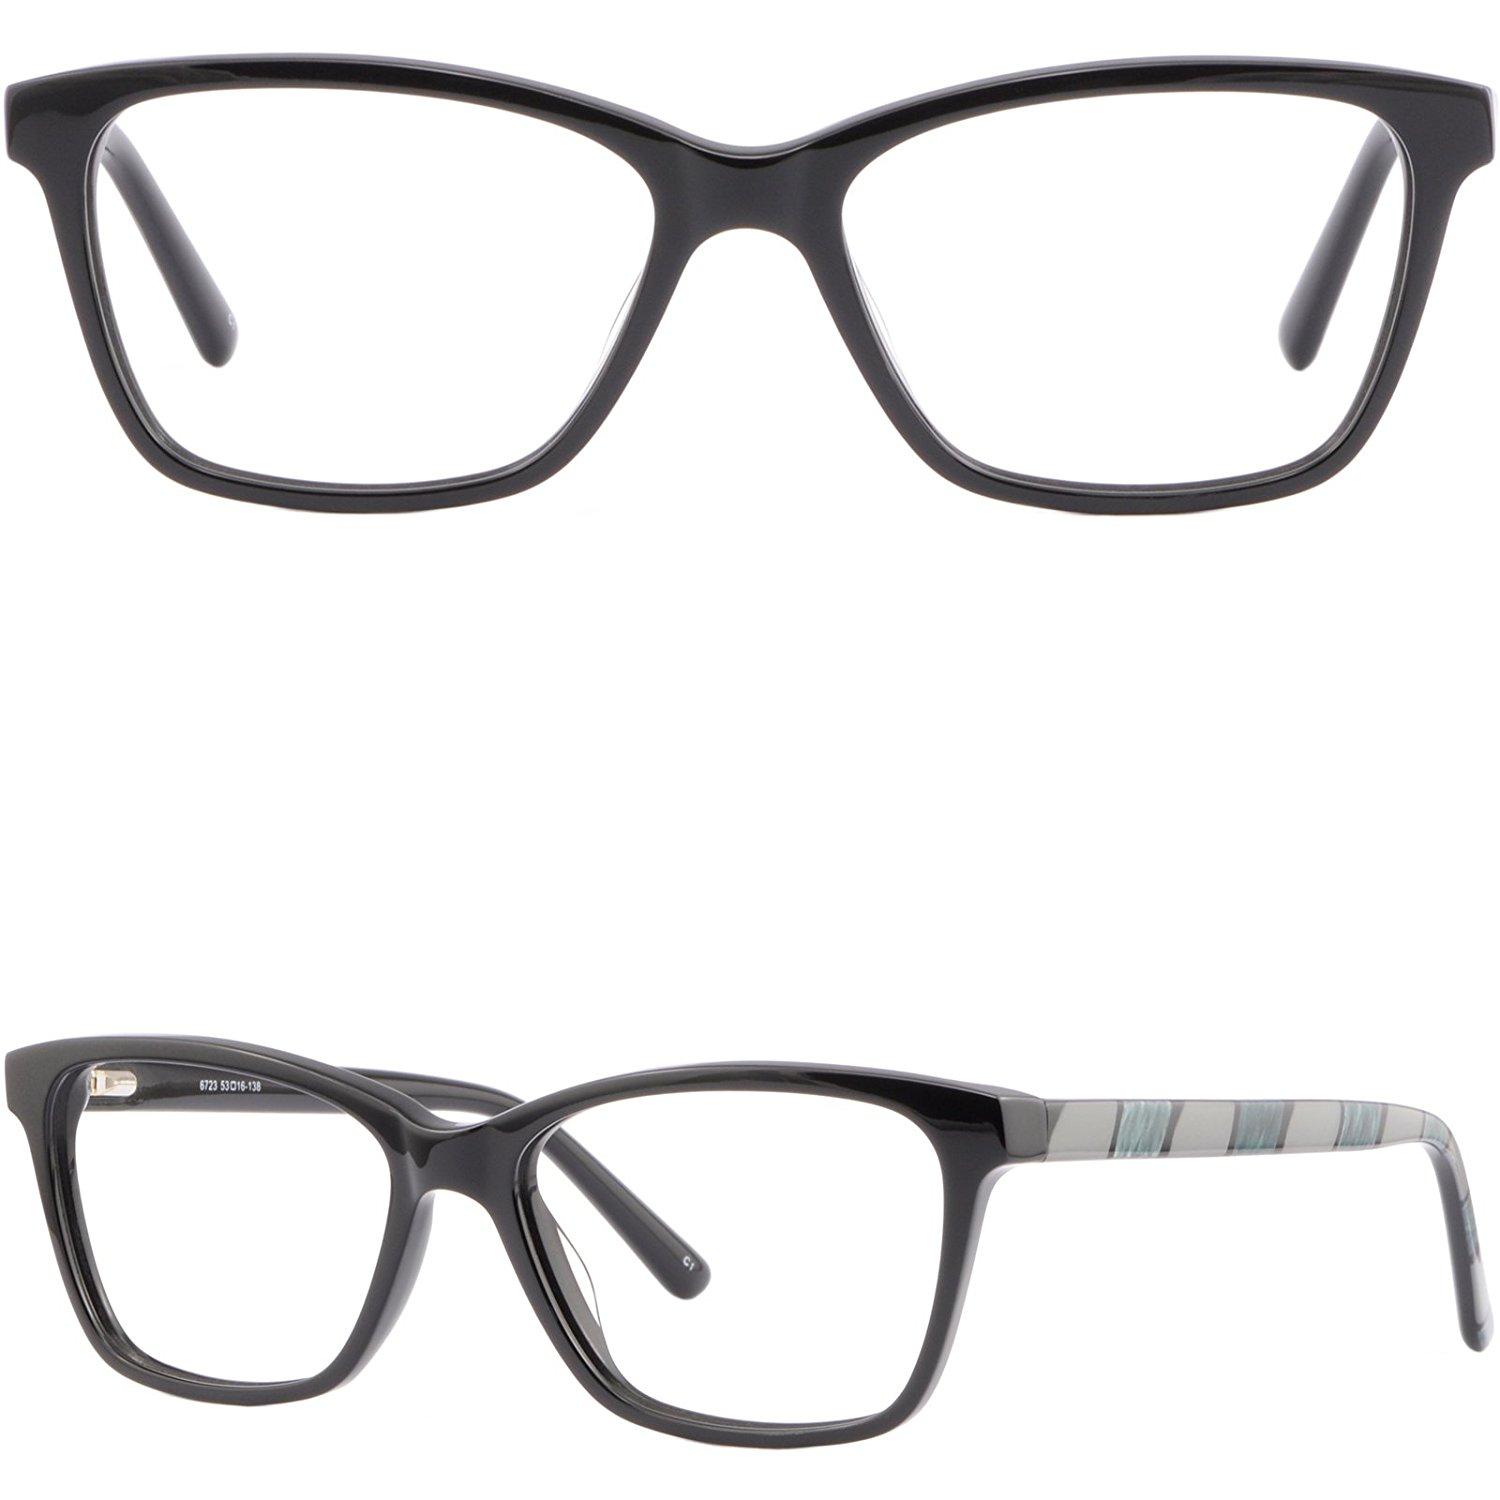 daa2d16be6d Get Quotations · Black Womens Mens Acetate Frames Spring Hinges  Prescription Eyeglasses Rectangle